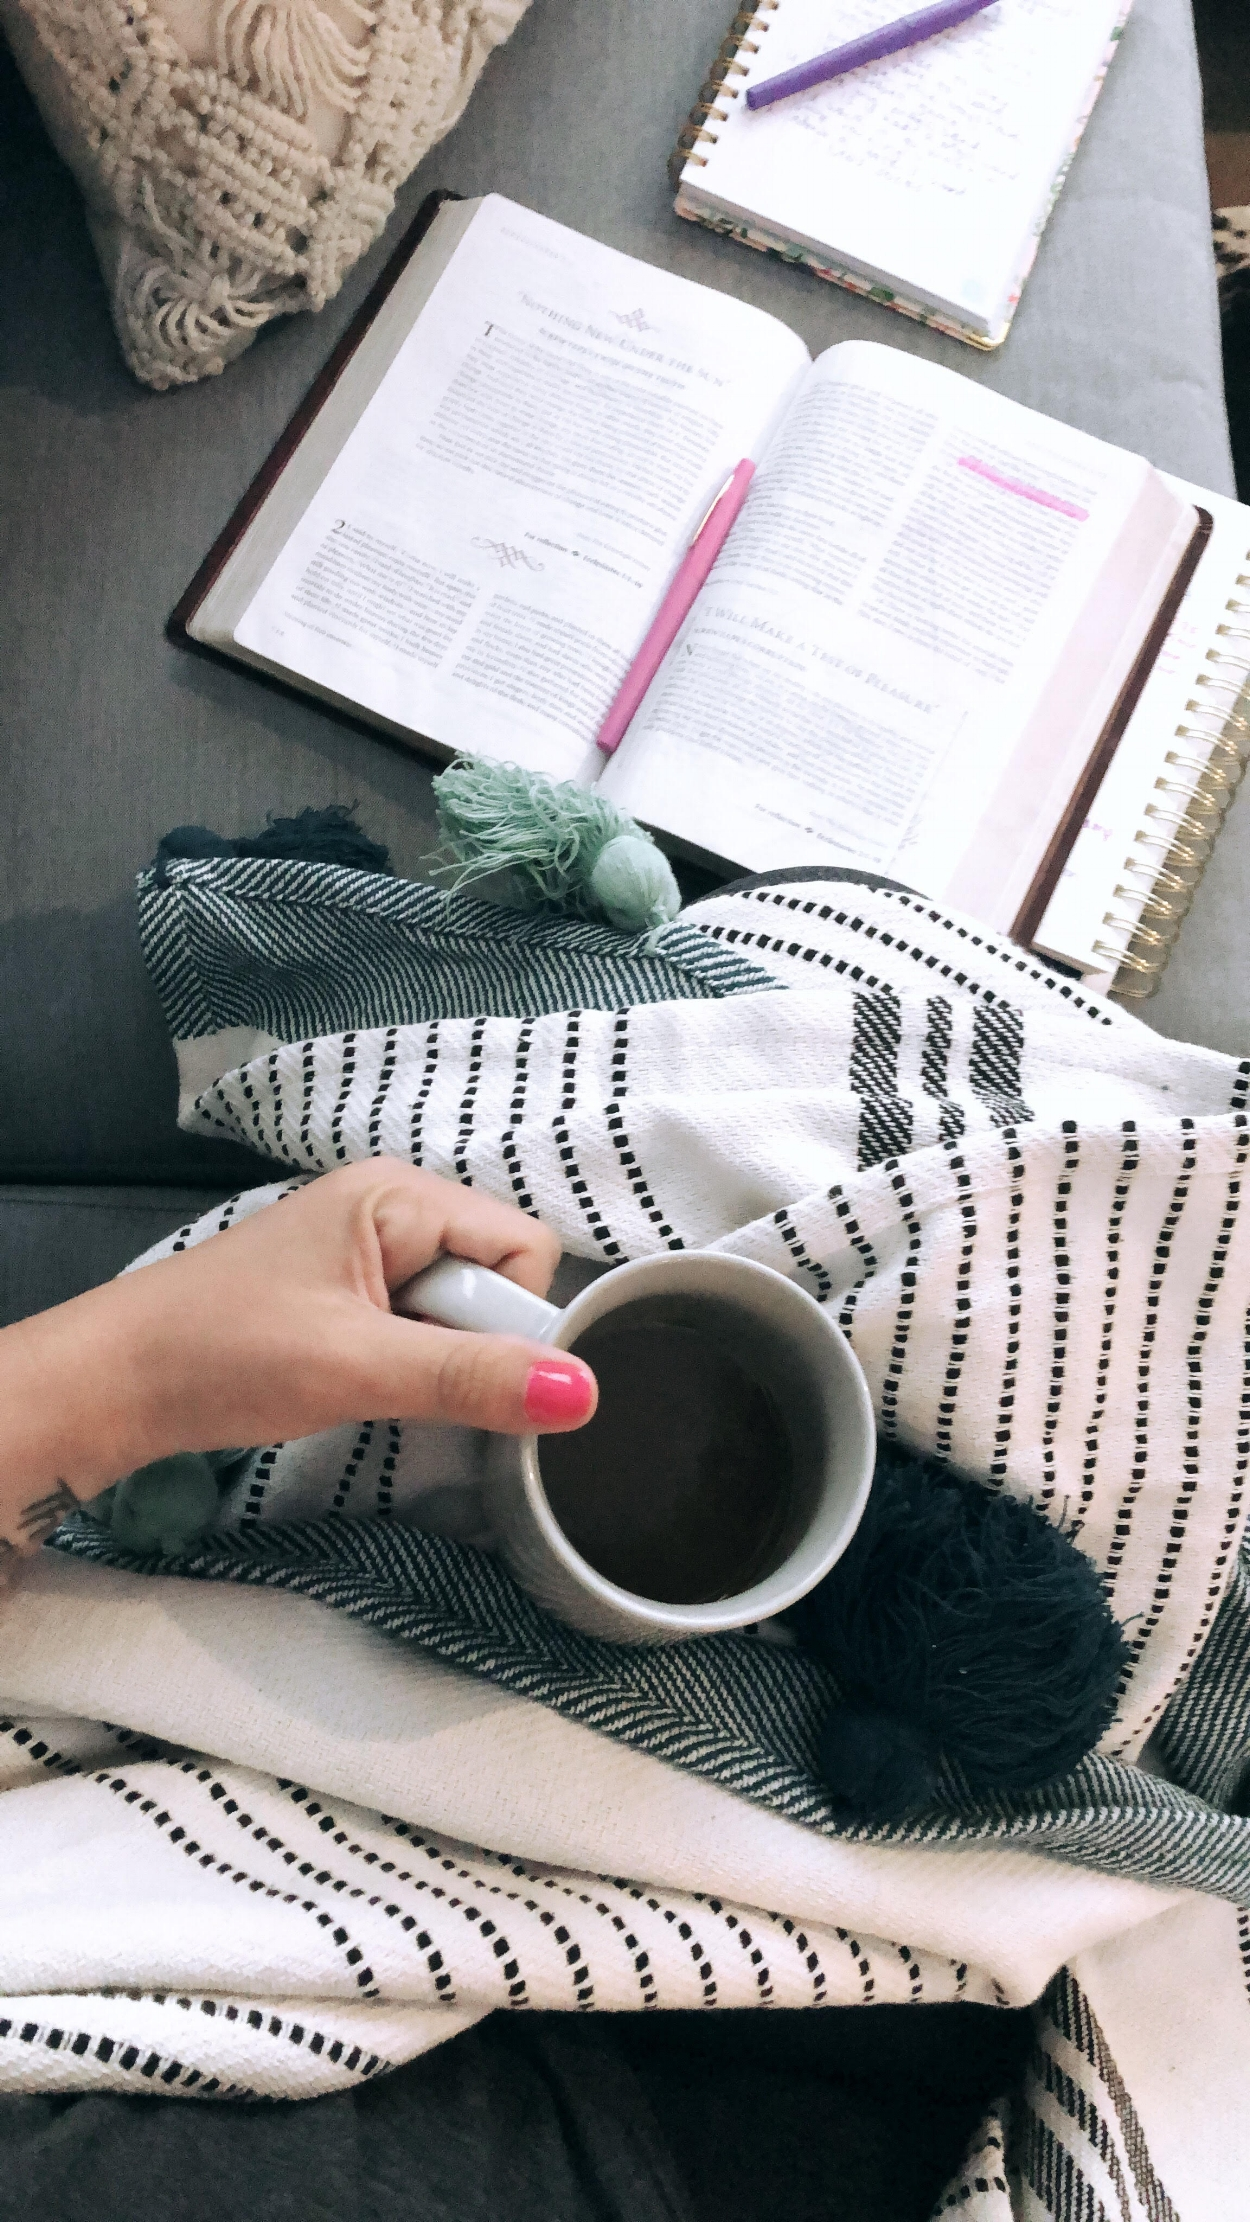 Allie_Reading_Bible_Drinking_Coffee_Flatlay.jpg